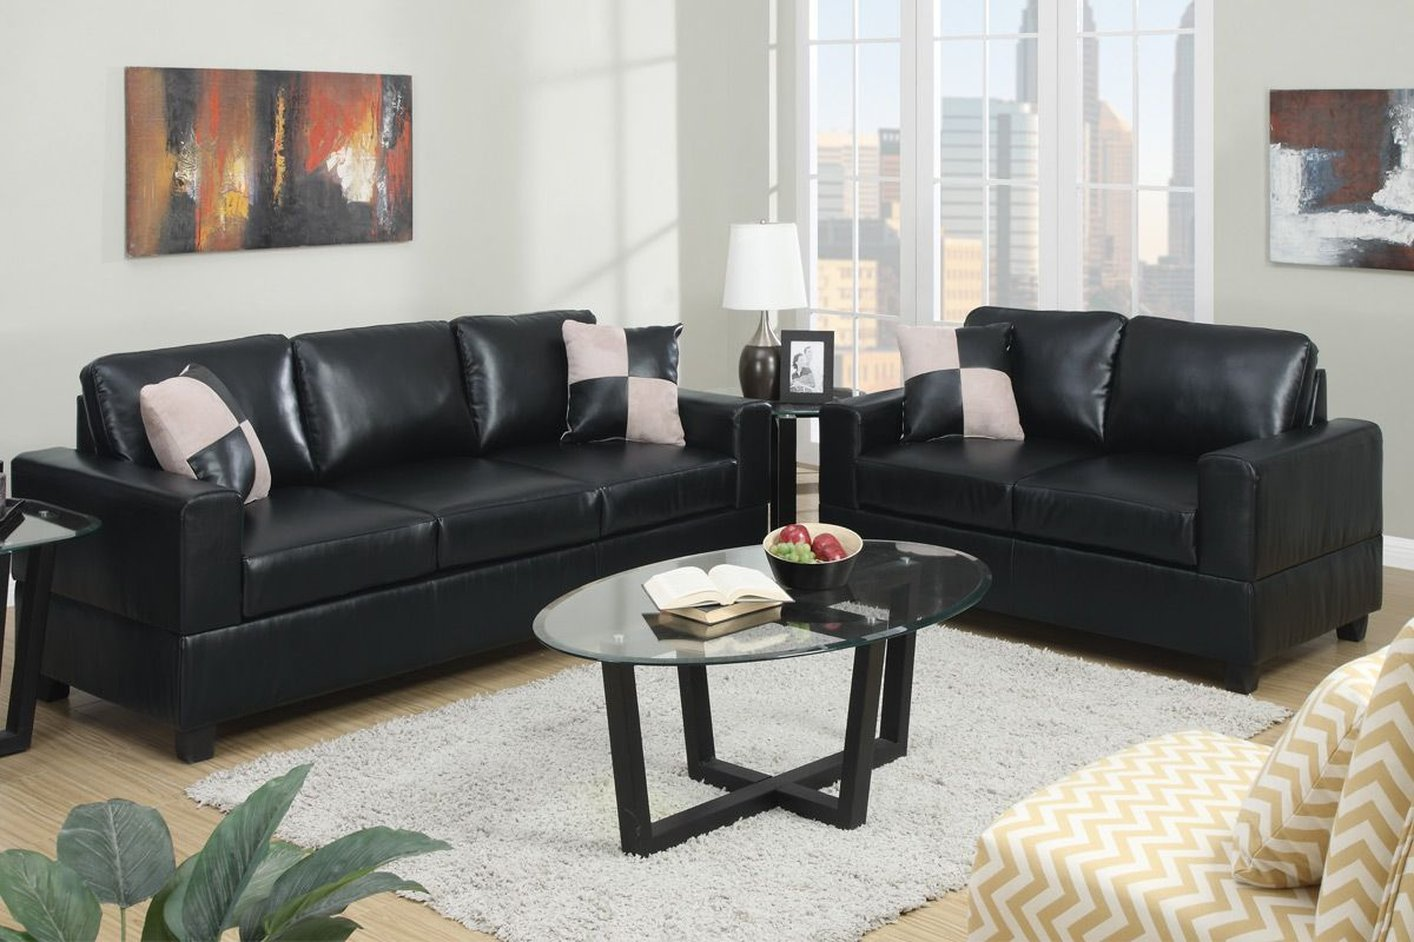 poundex tesse f7598 black leather sofa and loveseat set steal a sofa furniture outlet los